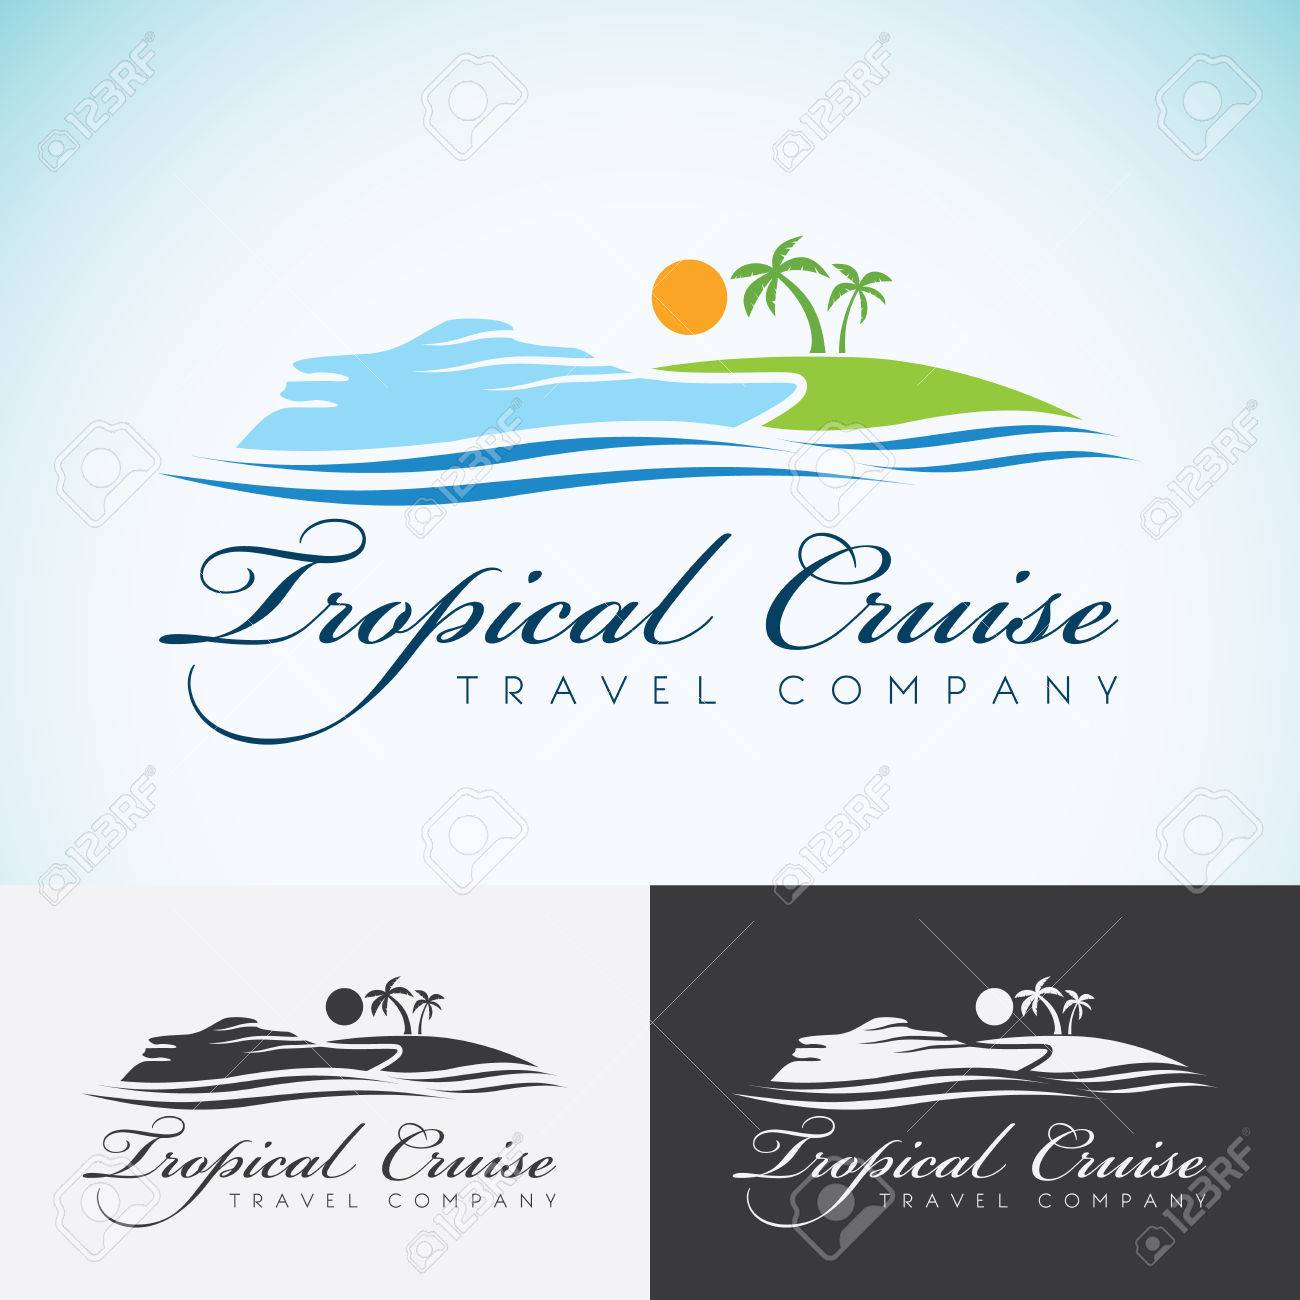 Tropical Island Yacht Yacht Palm Trees And Sun Travel Company Design Template